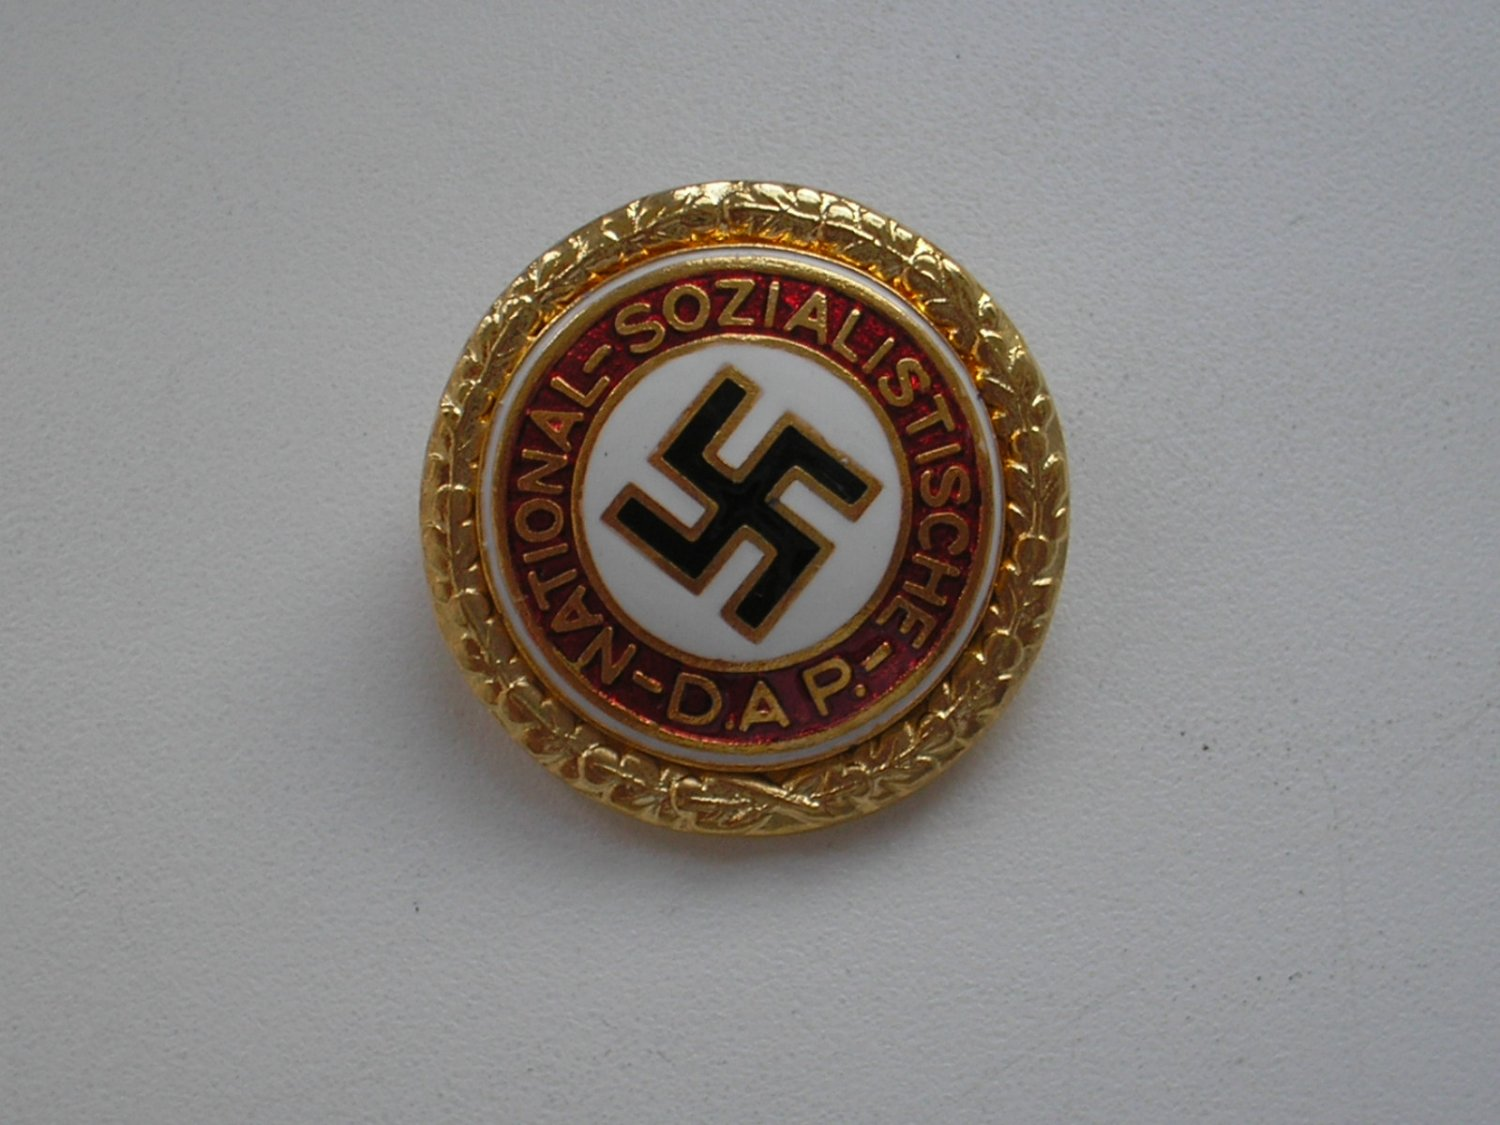 WWII THE GERMAN GOLDEN PARTY NSDAP BADGE